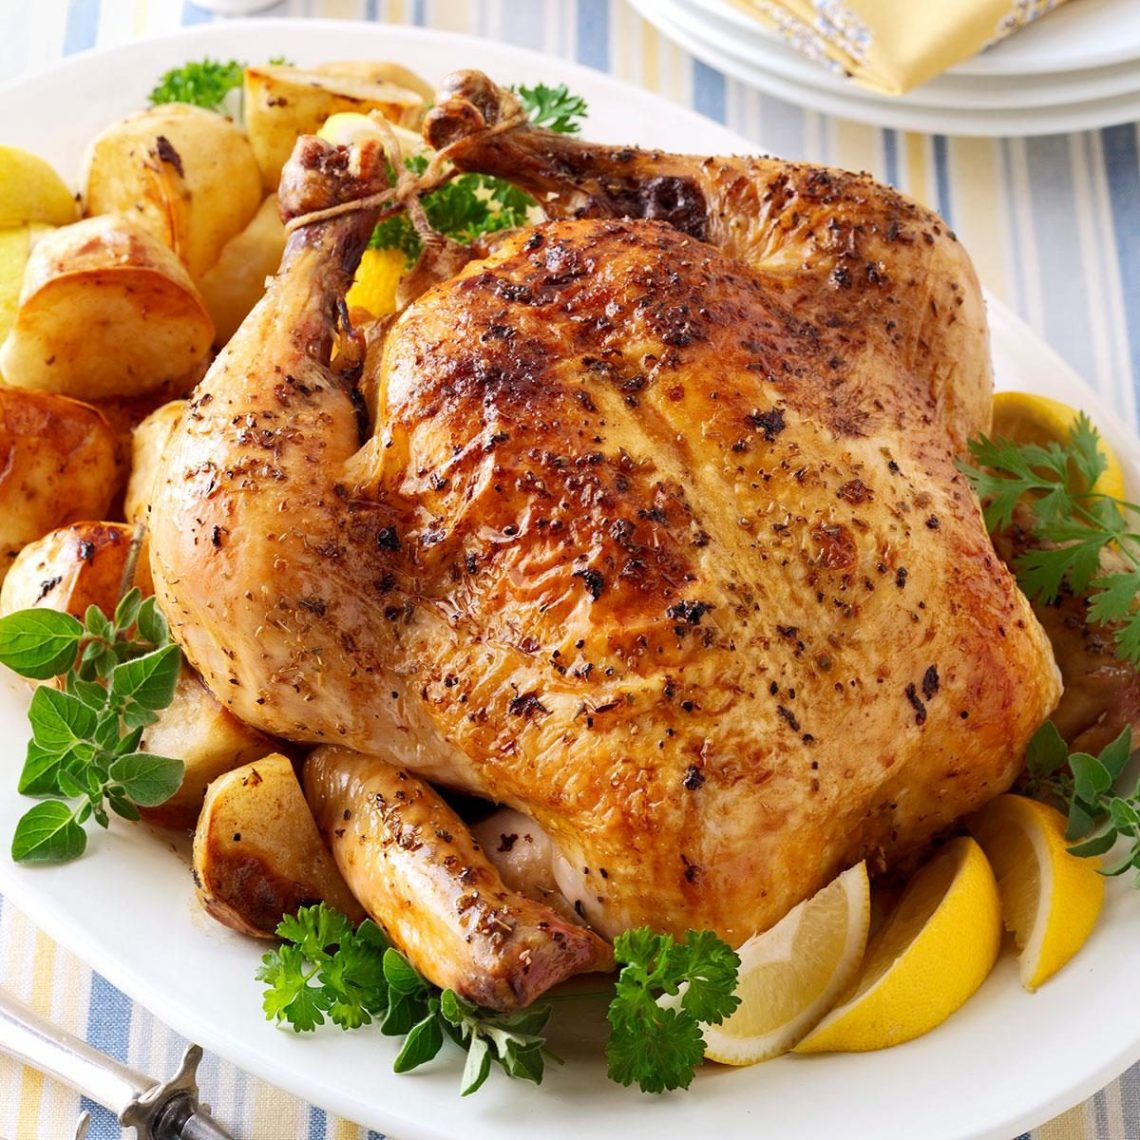 Image Result For How To Make A Roast In A Slow Cooker